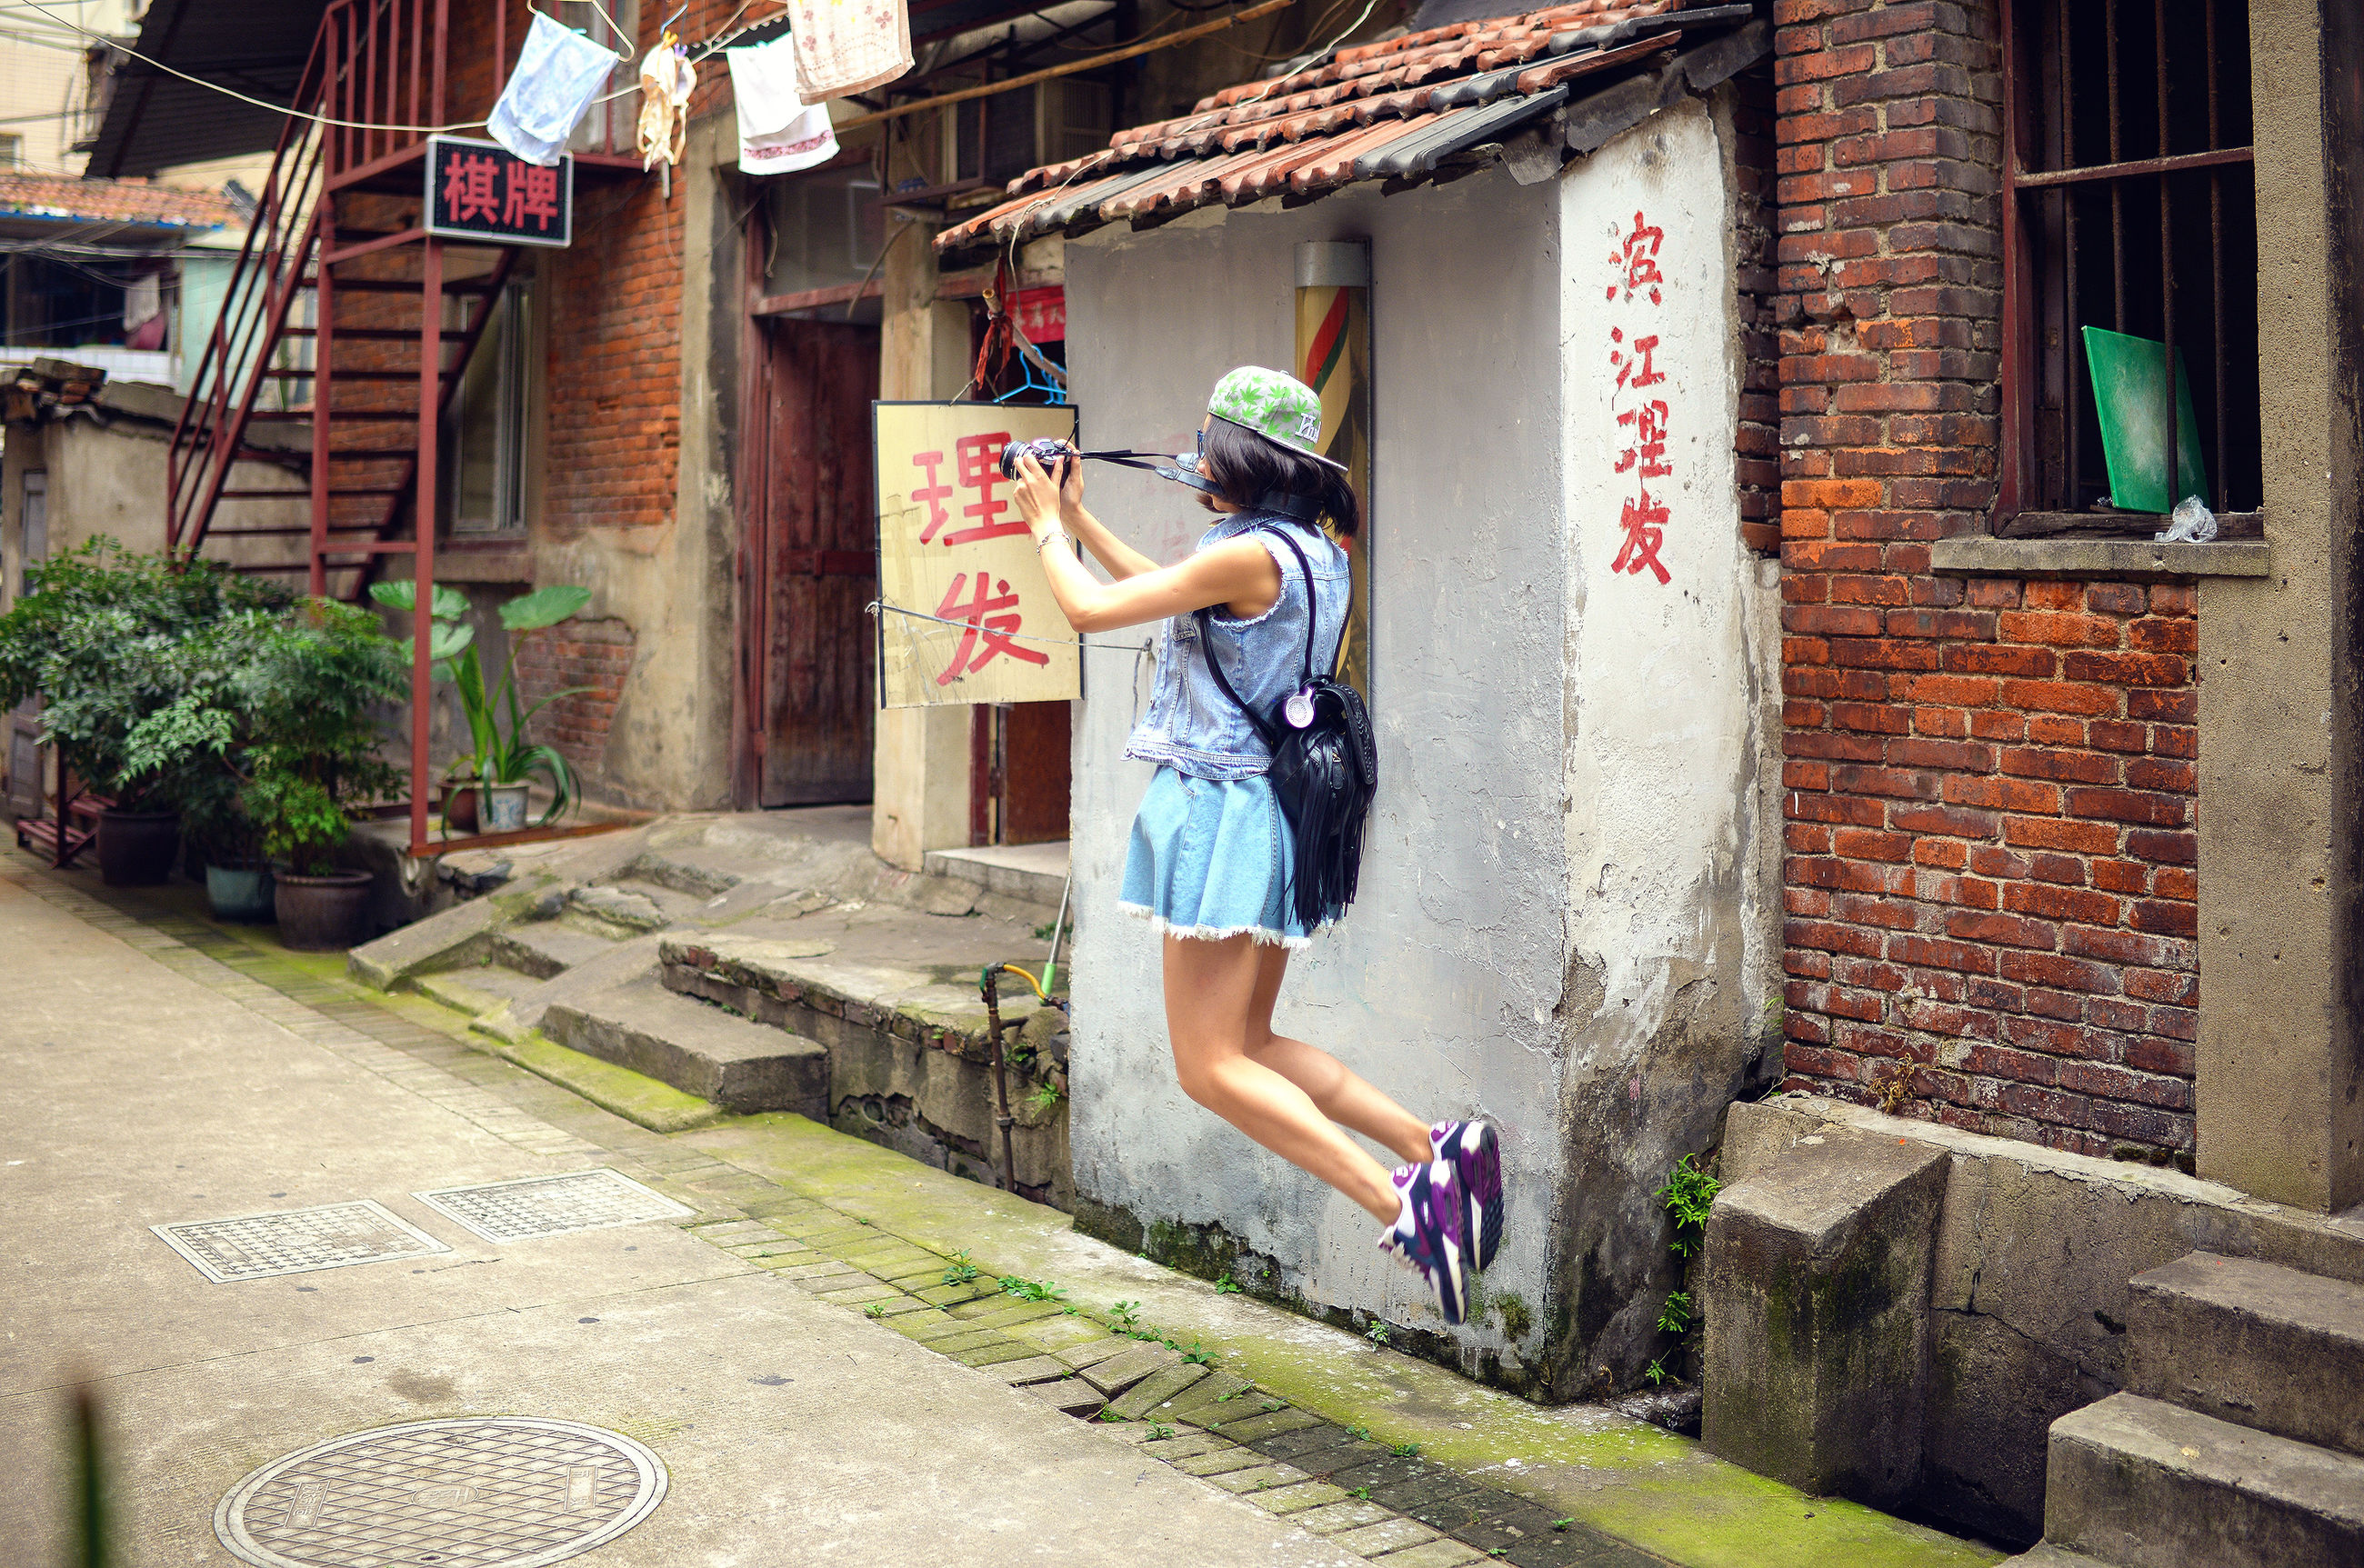 building exterior, full length, architecture, built structure, lifestyles, leisure activity, casual clothing, young adult, person, jumping, walking, street, wall - building feature, young women, day, sunlight, holding, side view